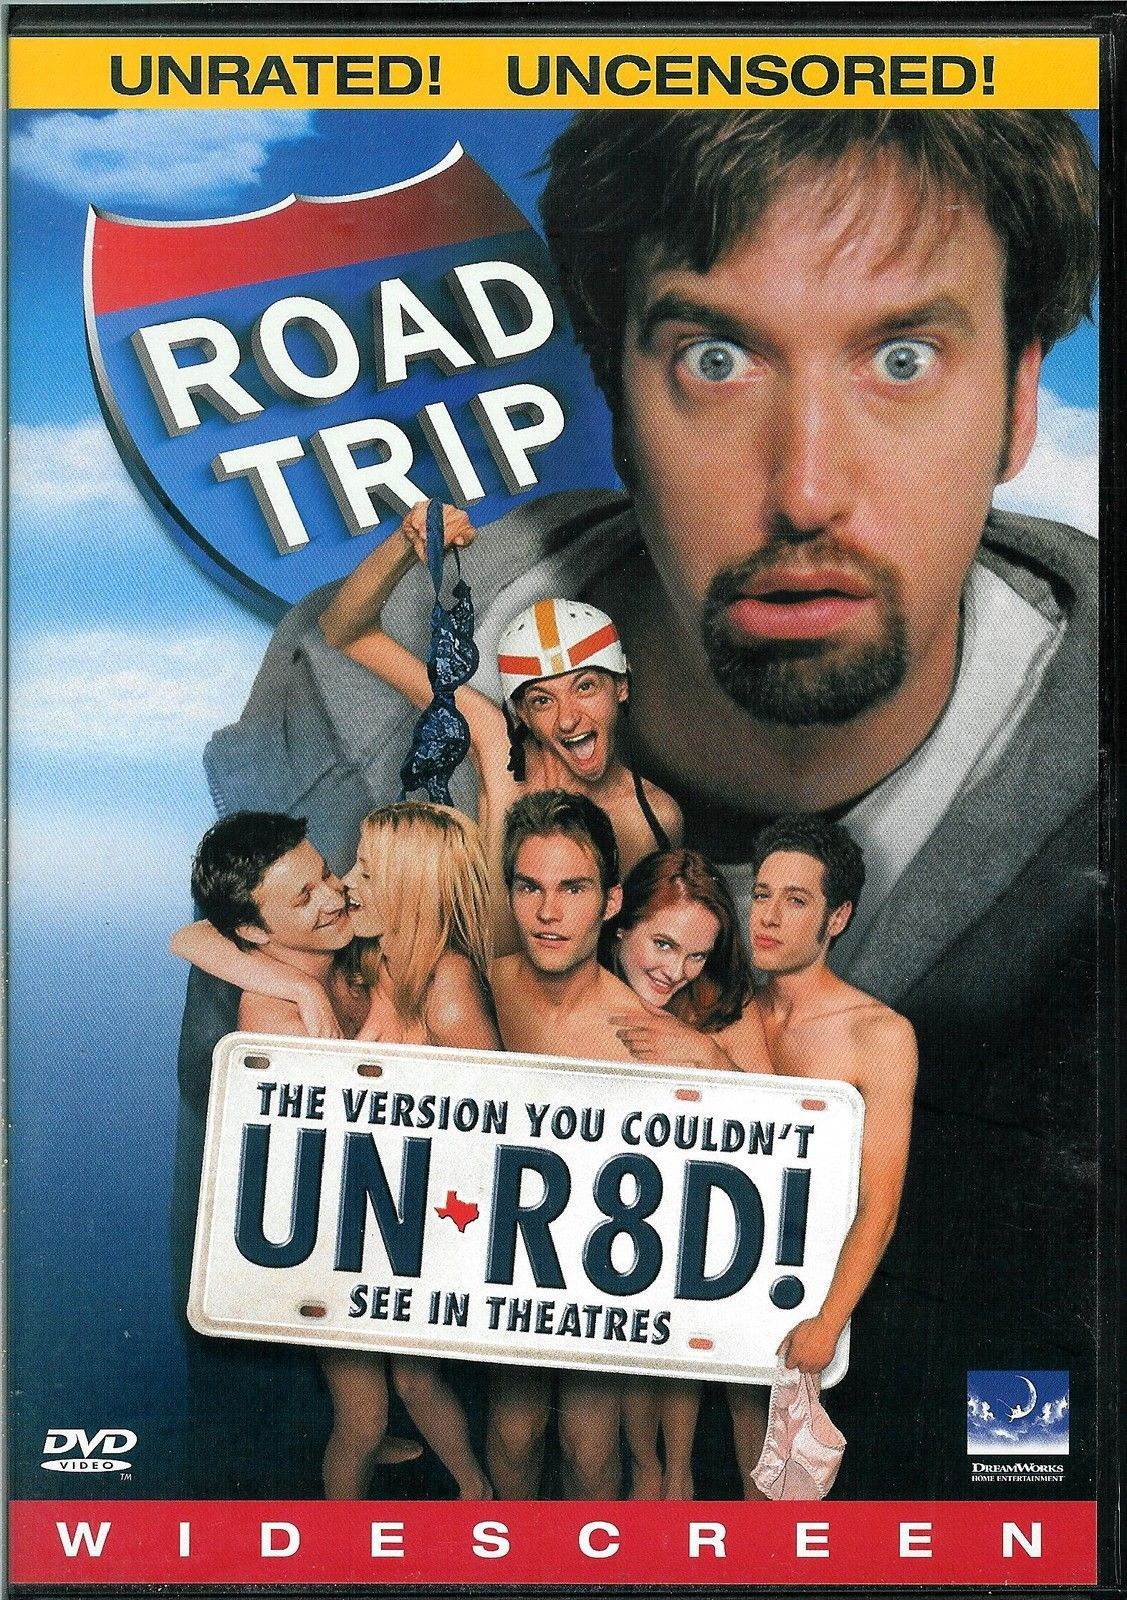 Primary image for ROAD TRIP  * BRECKIN MEYER / TOM GREEN * UNRATED - UNCENSORED - WIDESCREEN  DVD